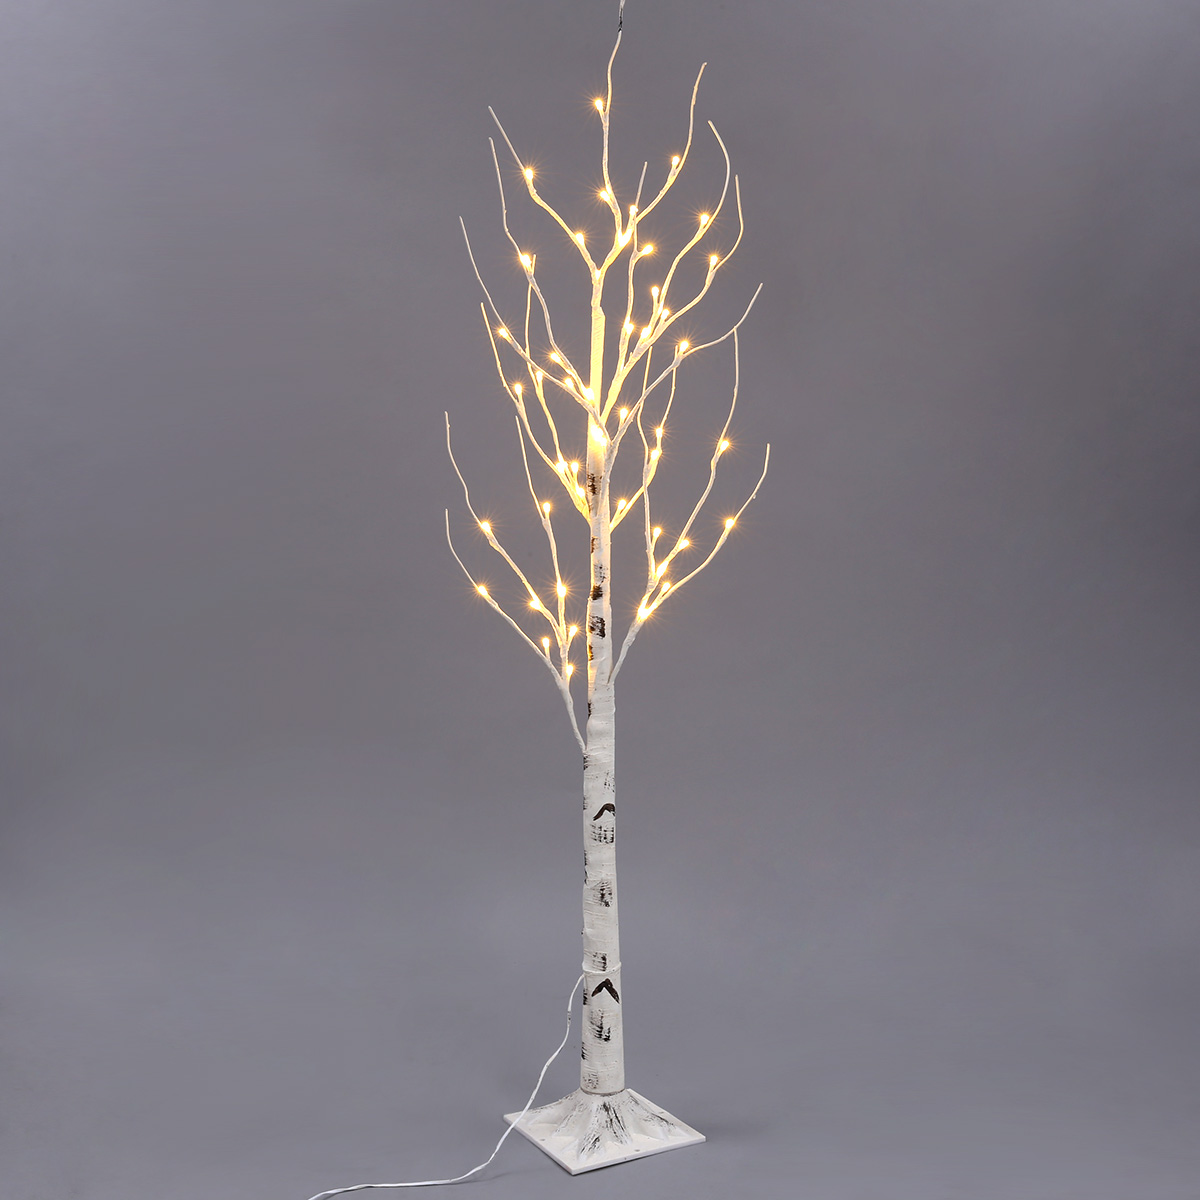 Details About 4FT 48LED Birch Twig Tree Warm White Xmas Light Christmas Festival Party Decor